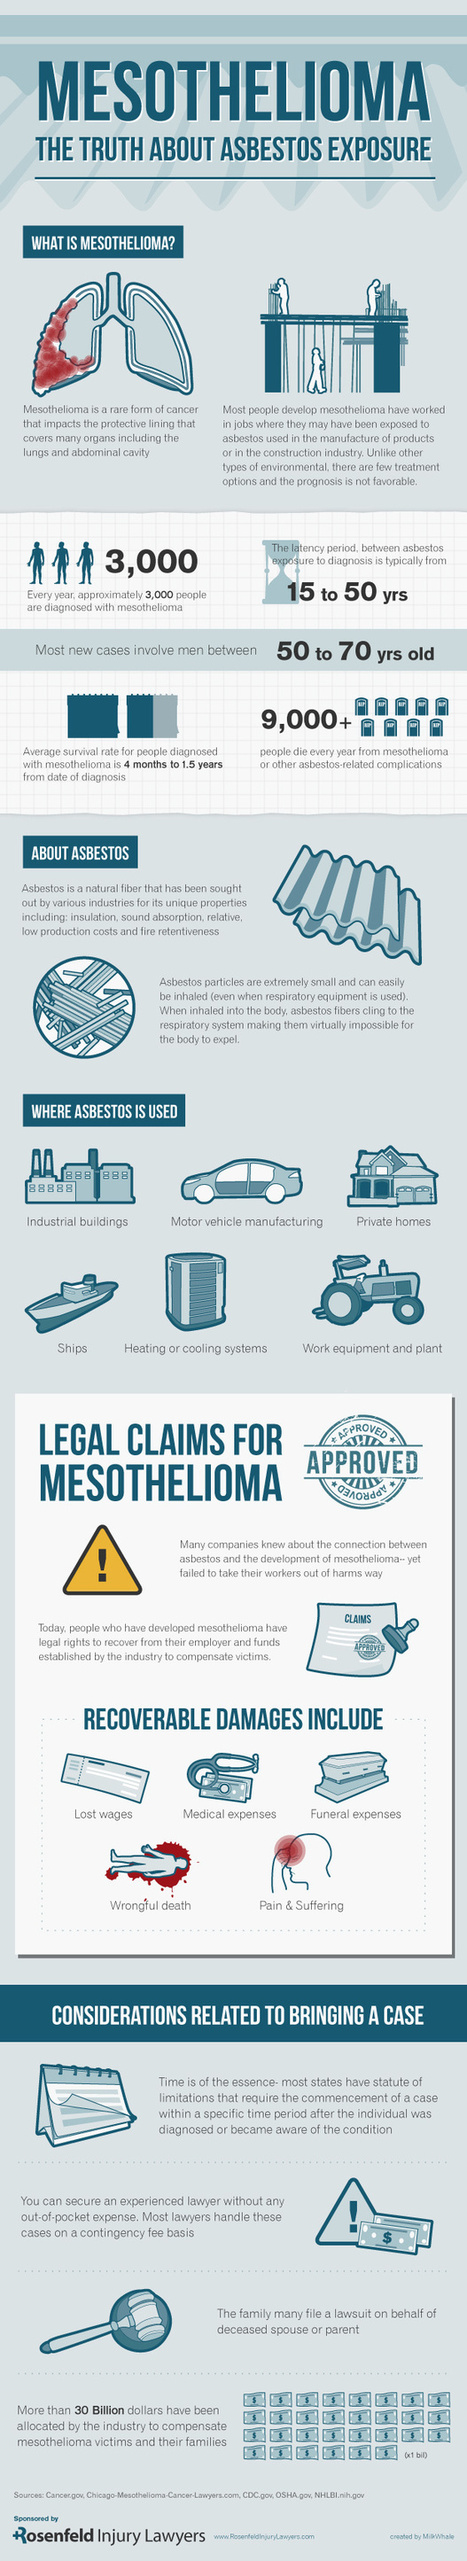 Infographic – Mesothelioma: The Truth About Asbestos Exposure | BoneLess | Scoop.it